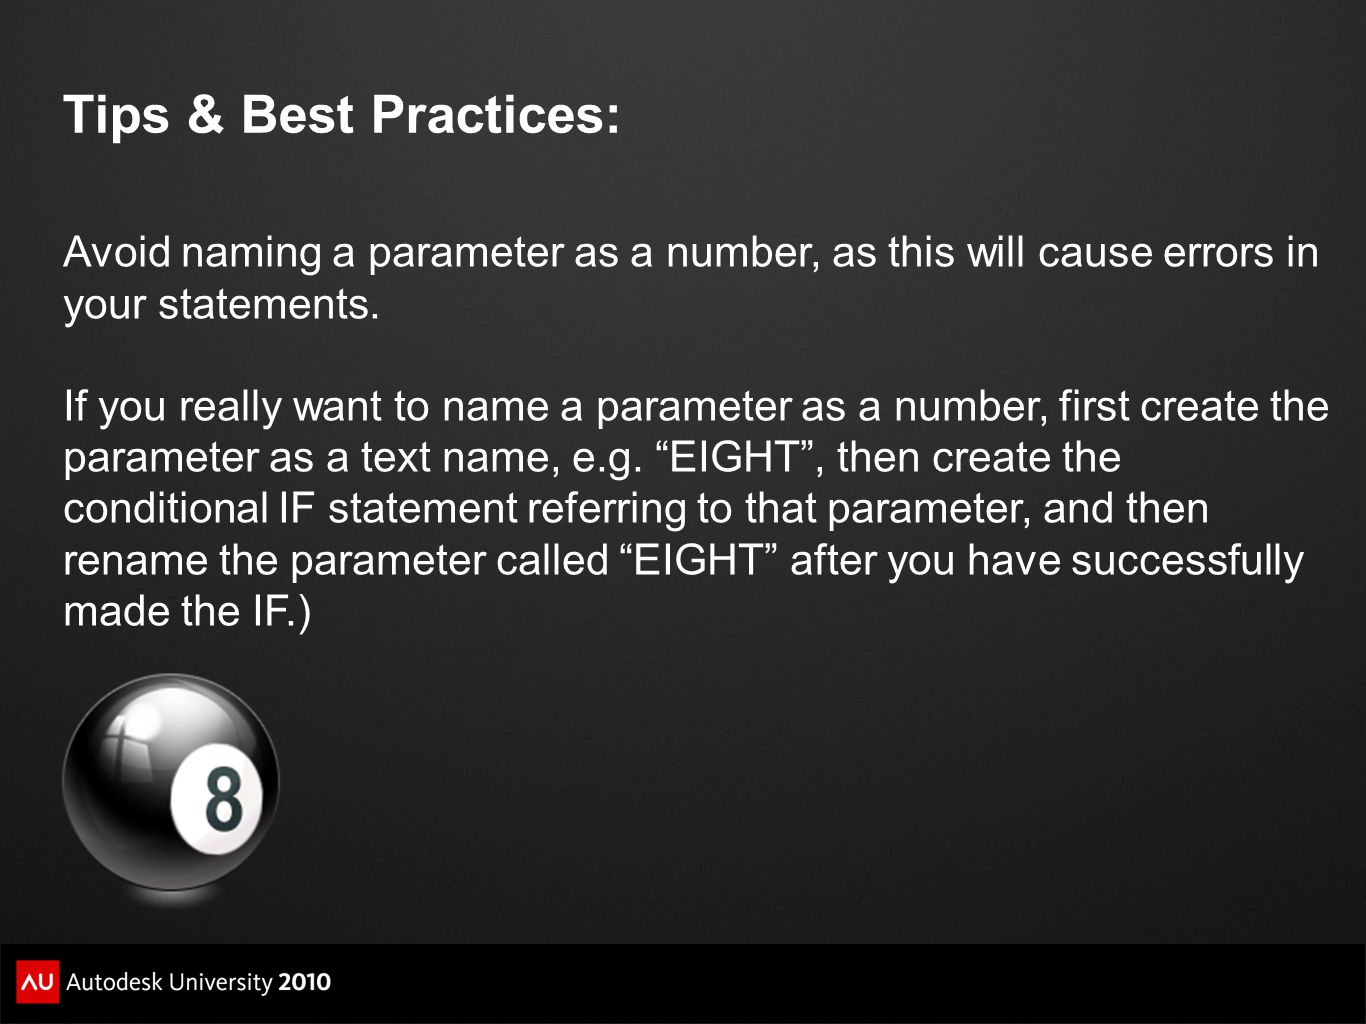 Tips & Best Practices: Avoid naming a parameter as a number, as this will cause errors in your statements.